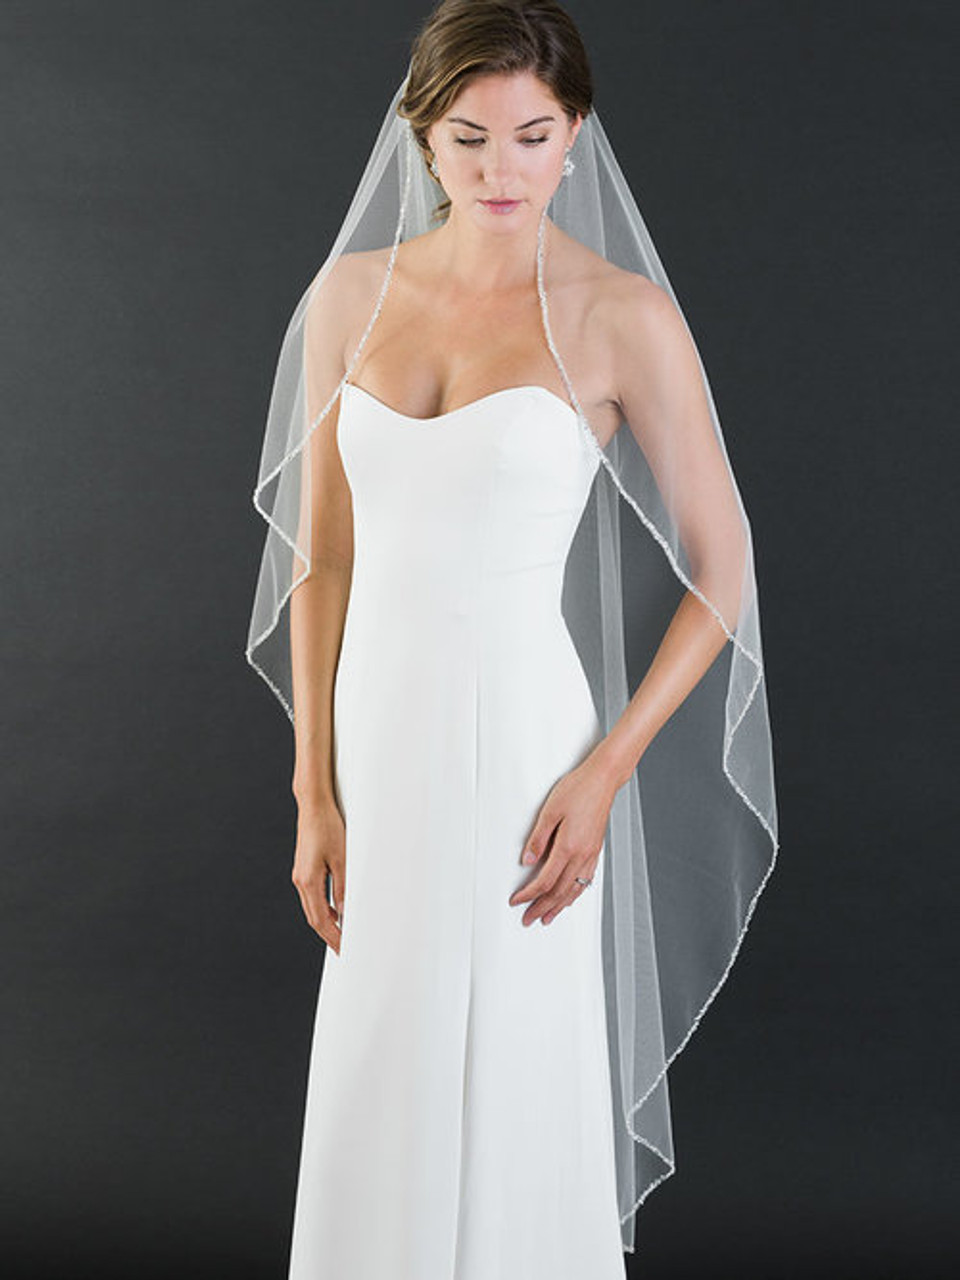 Bel Aire Bridal Veils V7464 - 1-tier fingertip veil with edge of frosted and silver bugle beads, and rhinestones